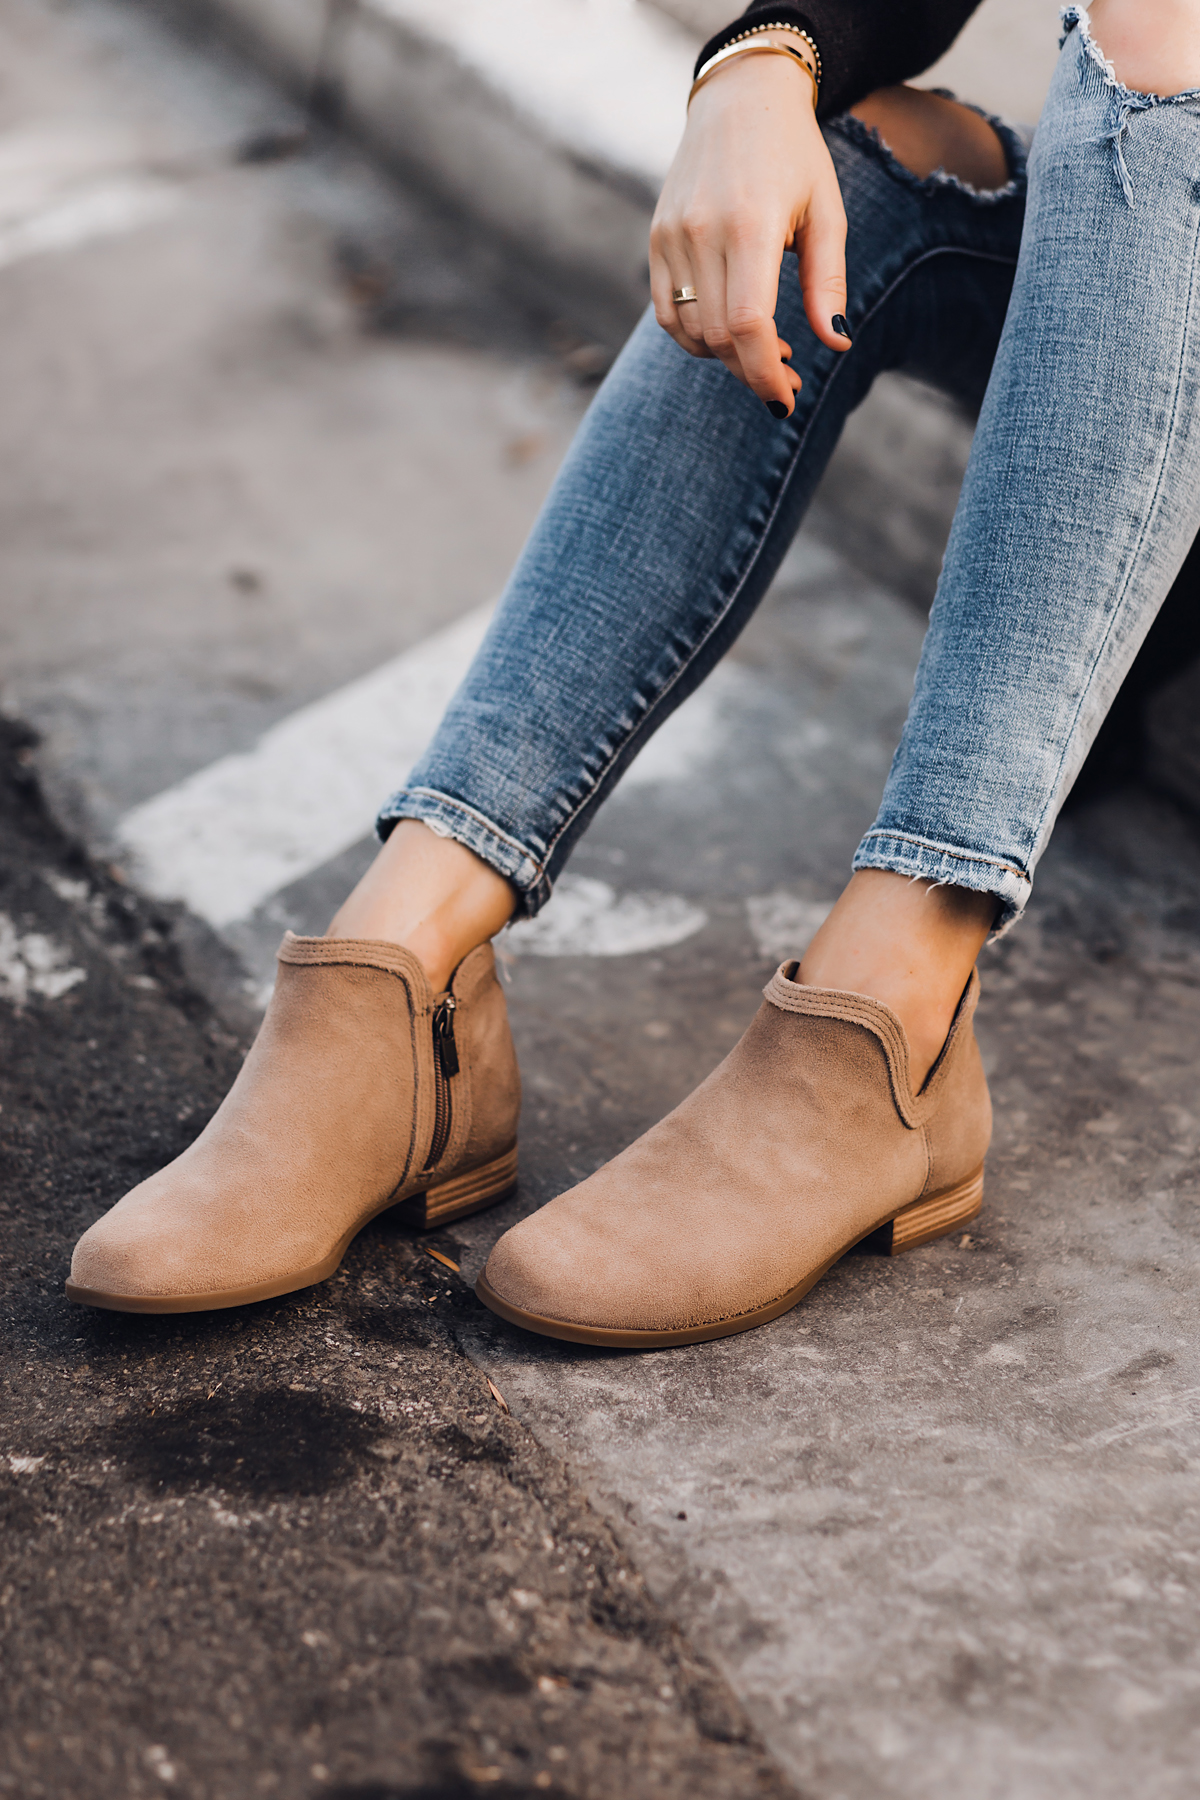 Woman Wearing Ripped Skinny Jeans Uggs Koolaburra Tan Booties Fashion Jackson San Diego Fashion Blogger Street Style